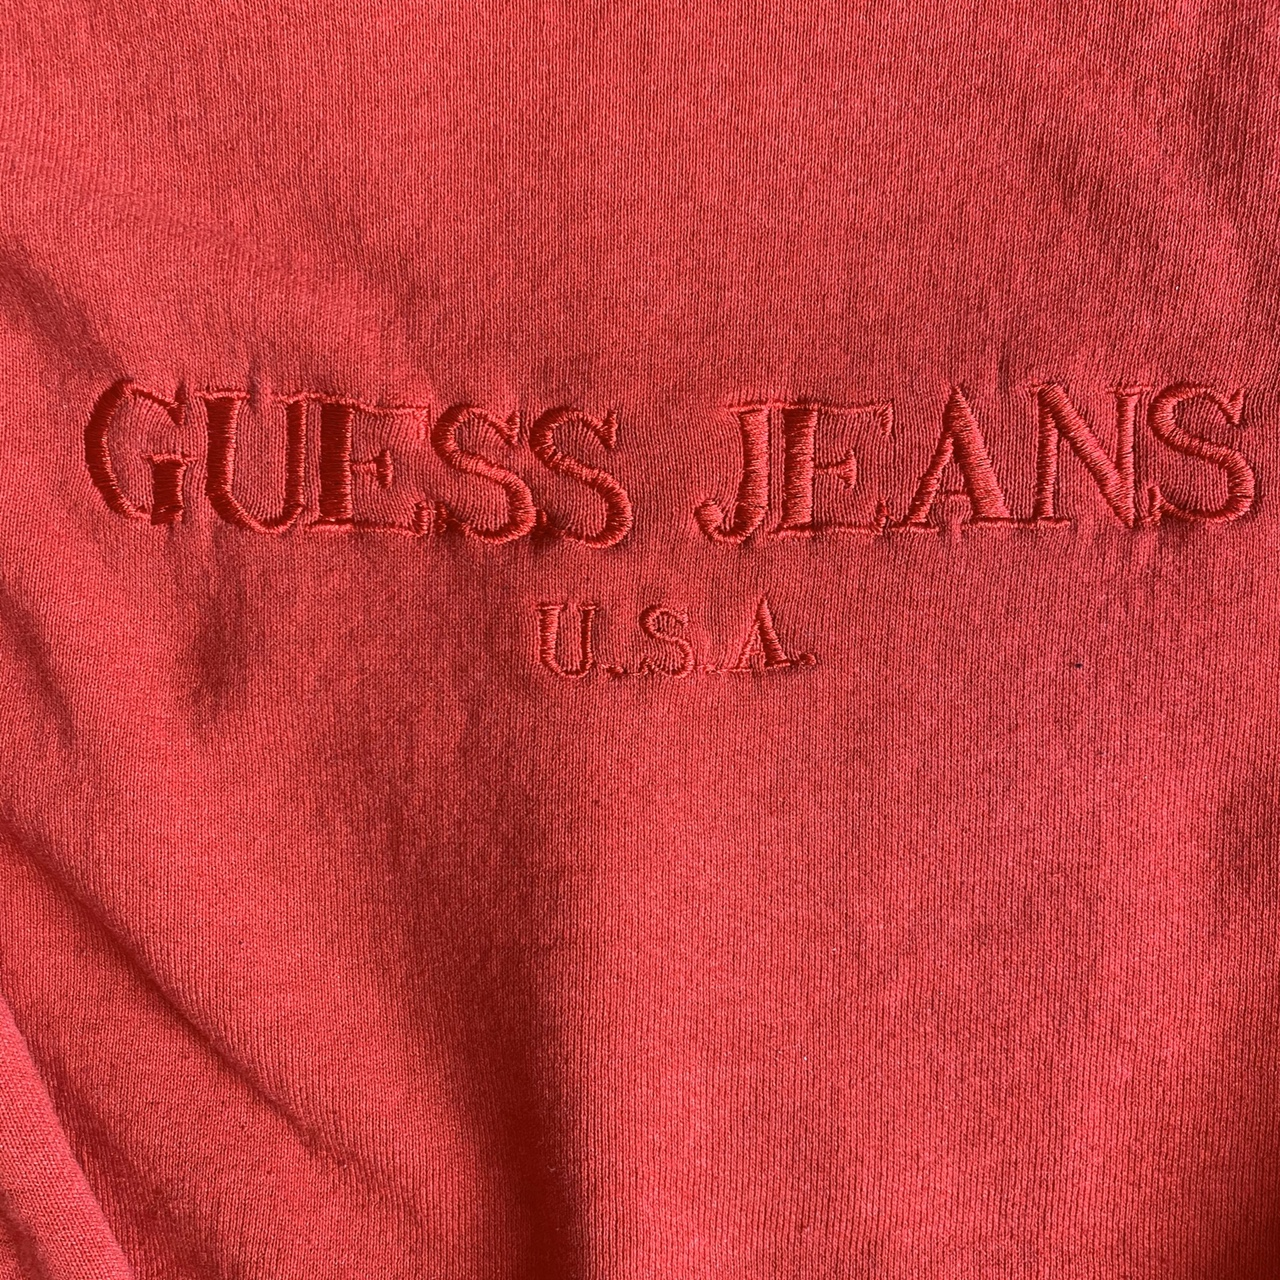 Product Image 2 - Beautiful vintage guess sweatshirt boot Fits